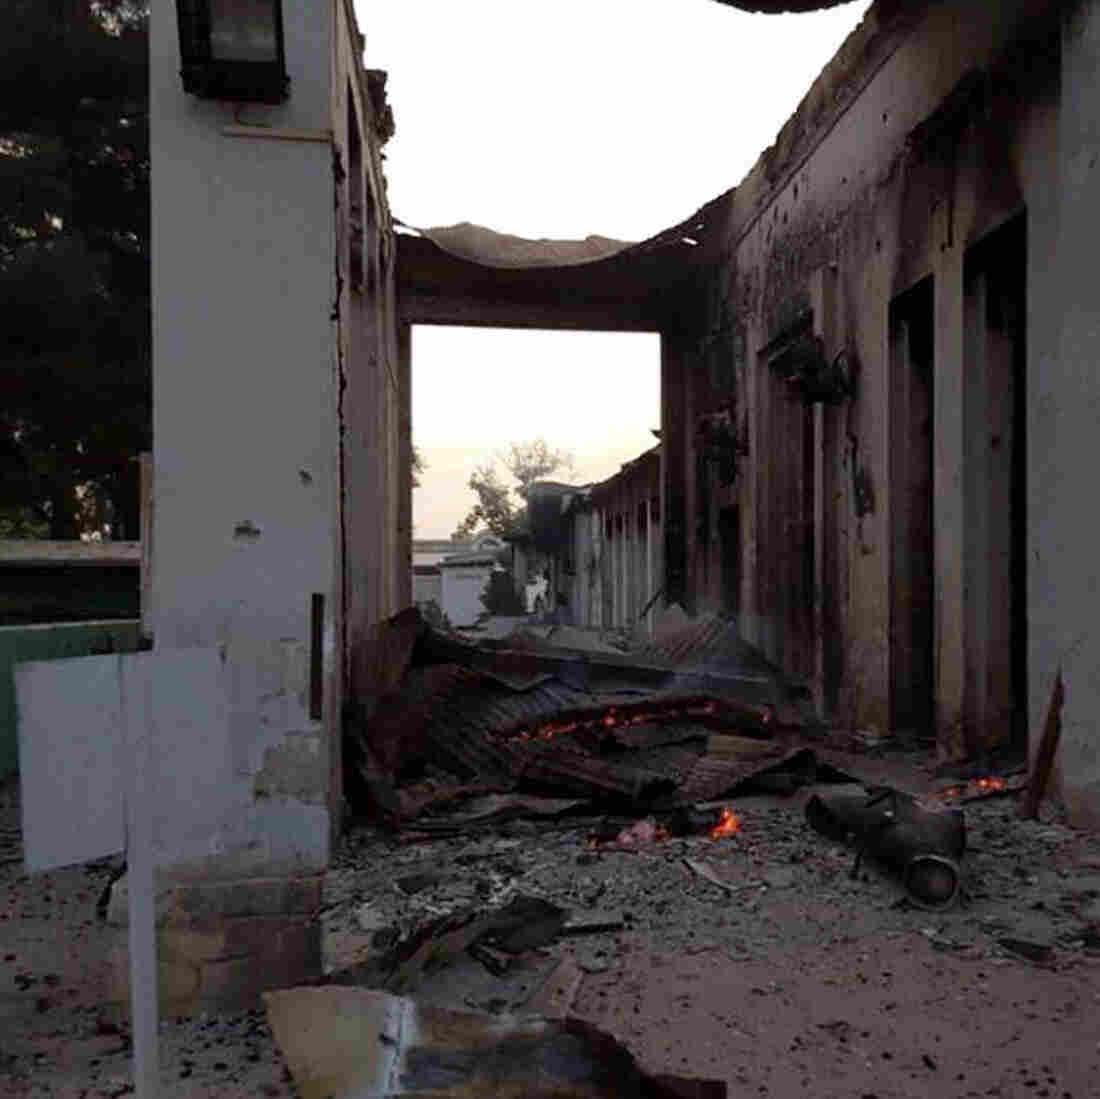 The burned Doctors Without Borders hospital is seen after explosions in the northern Afghan city of Kunduz on Saturday. Doctors Without Borders says 12 staff members and 10 patients were killed in the attack and 37 others were wounded.